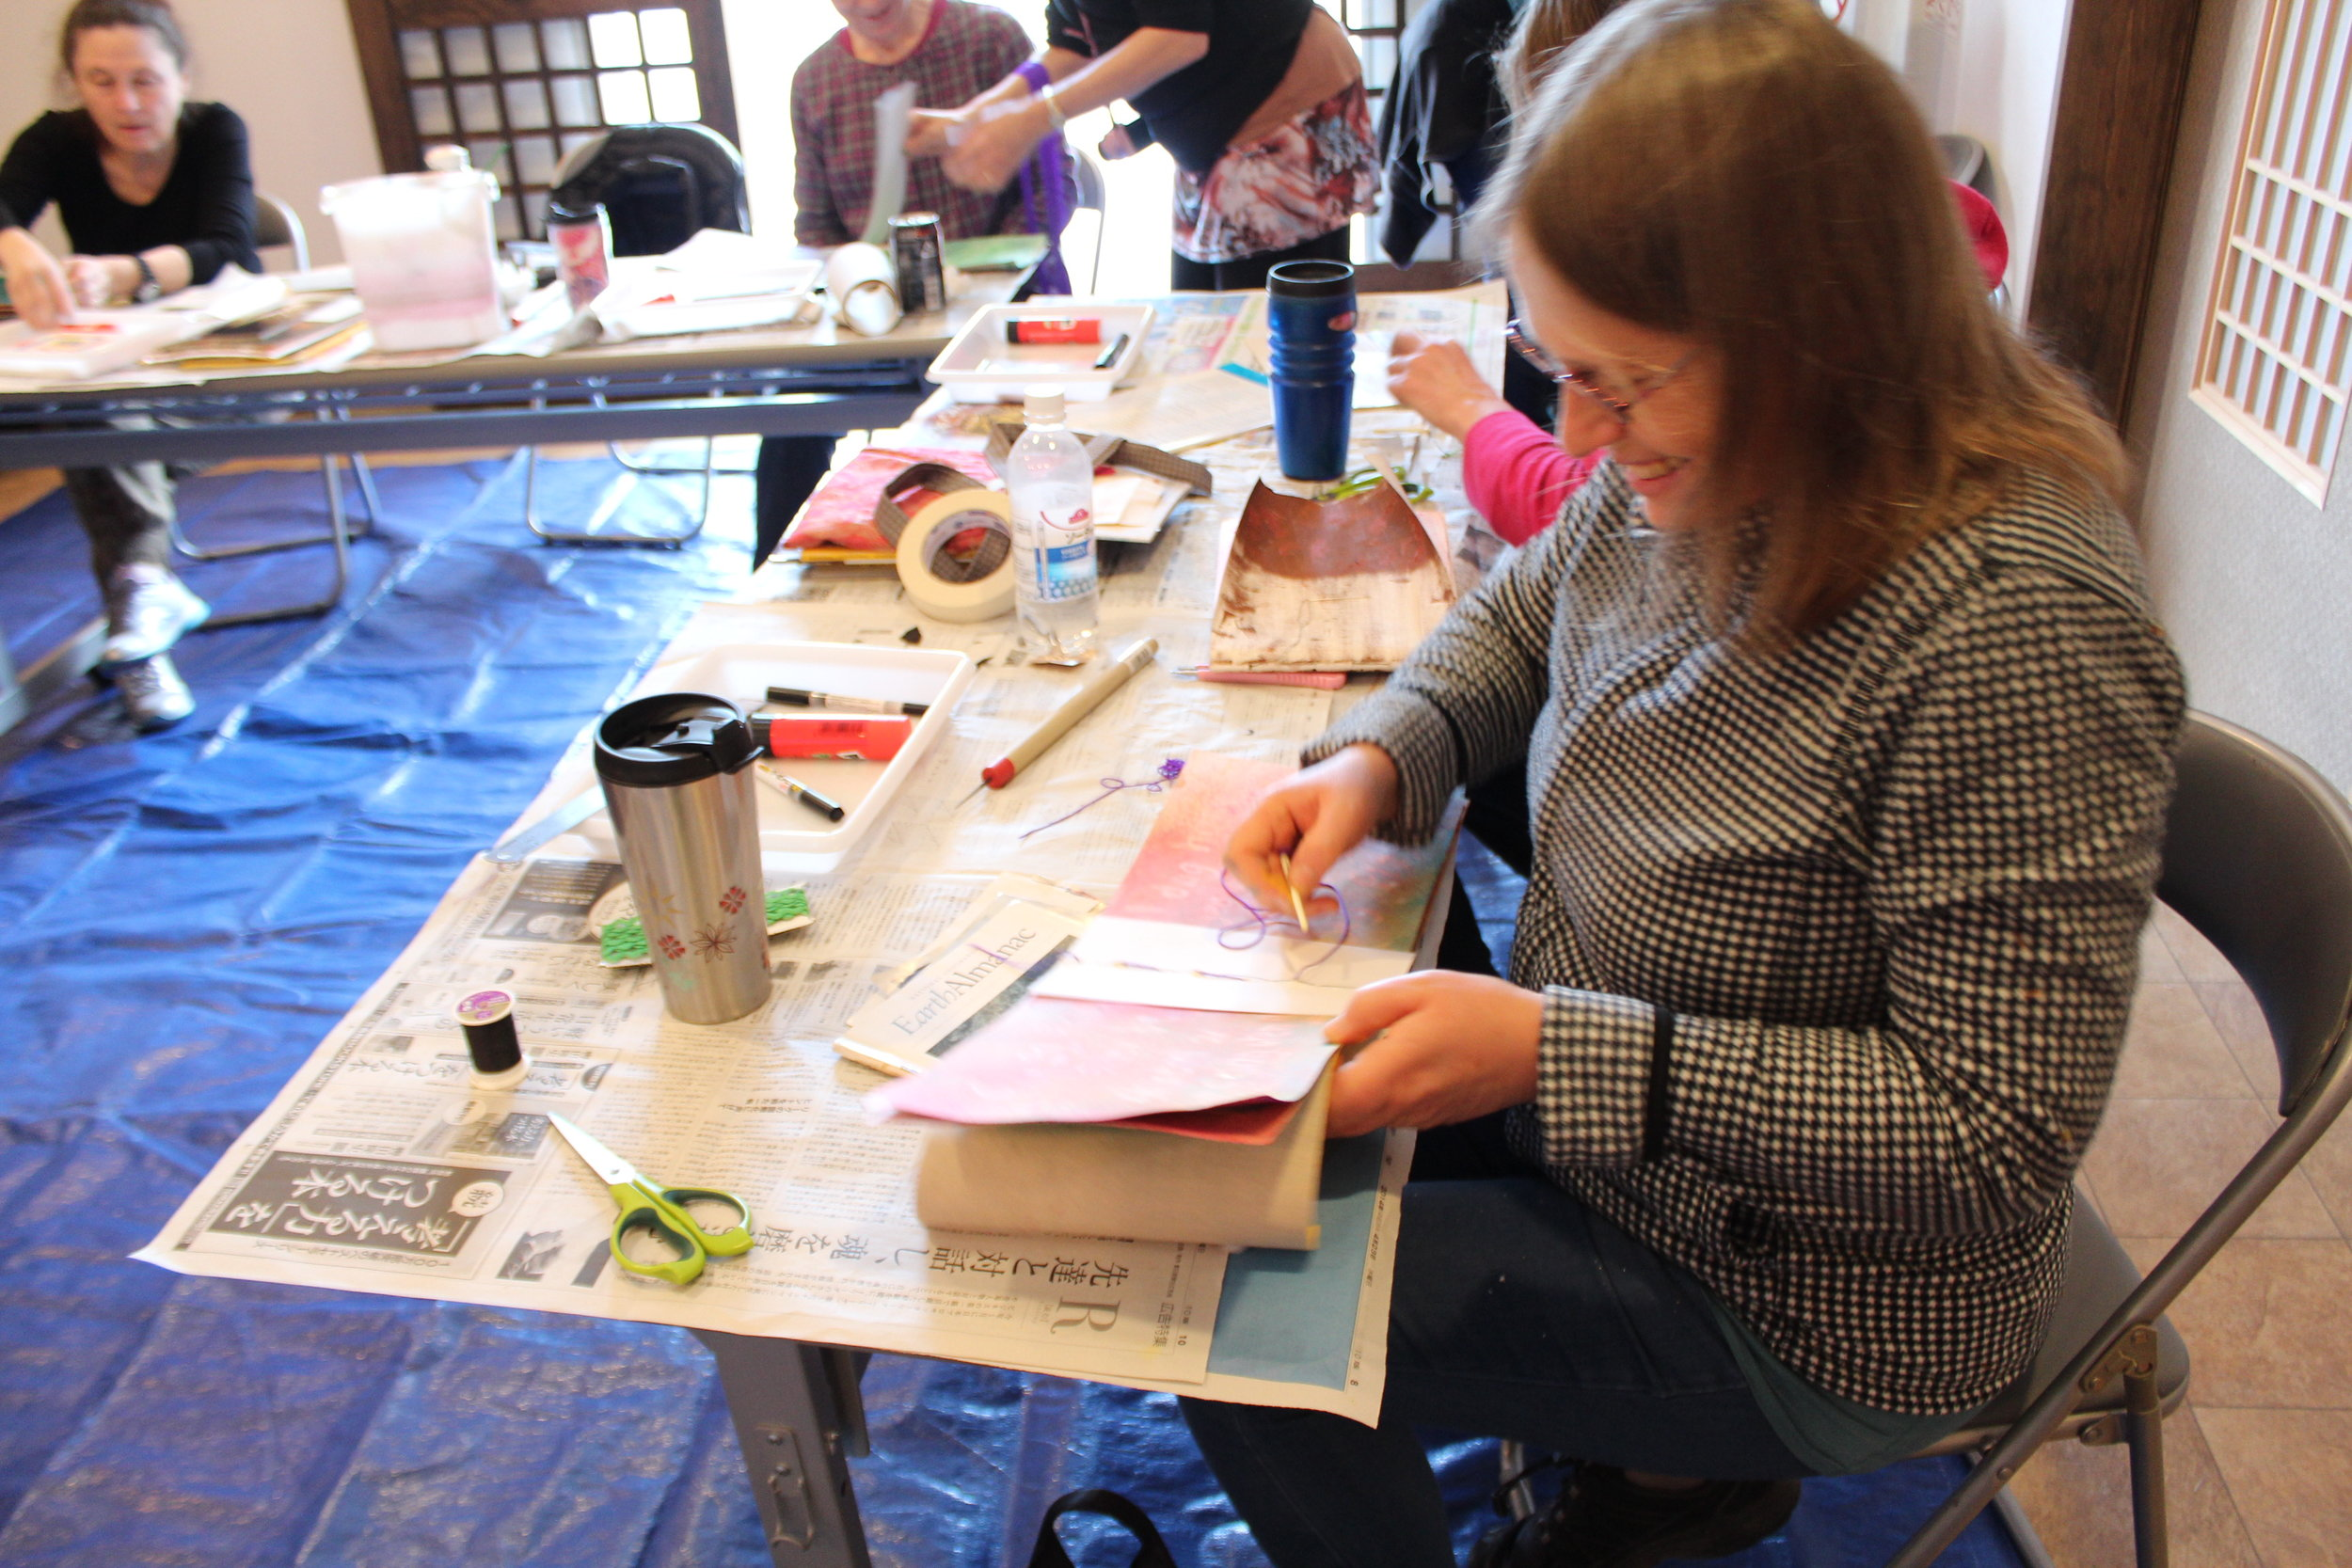 Open Art Studio - This is an open group designed for stress relief and relaxation through art.Participants can work independently or on the project of the day. Twice monthly at the Kailua Art Therapy Studio; Kailua, HI.